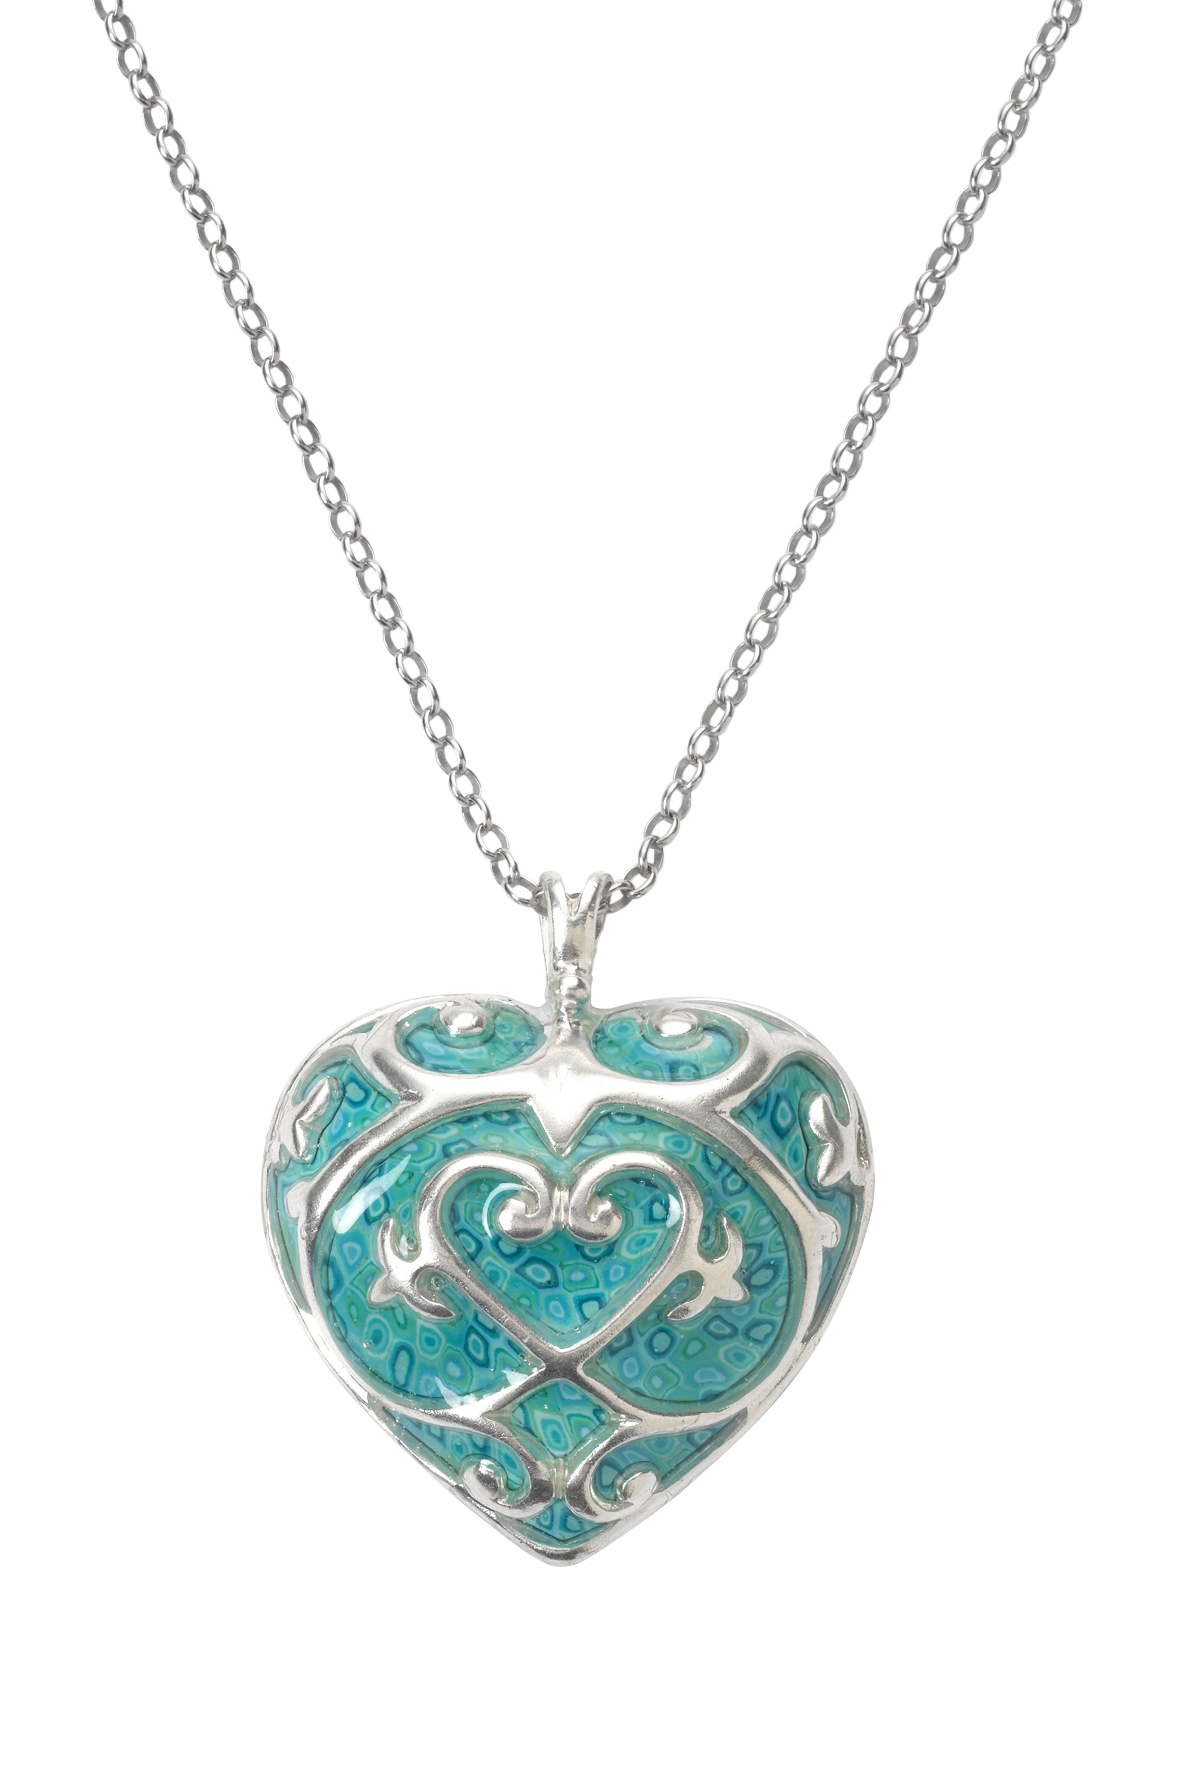 This Adina Plastelina heart pendant is decorated with turquoise